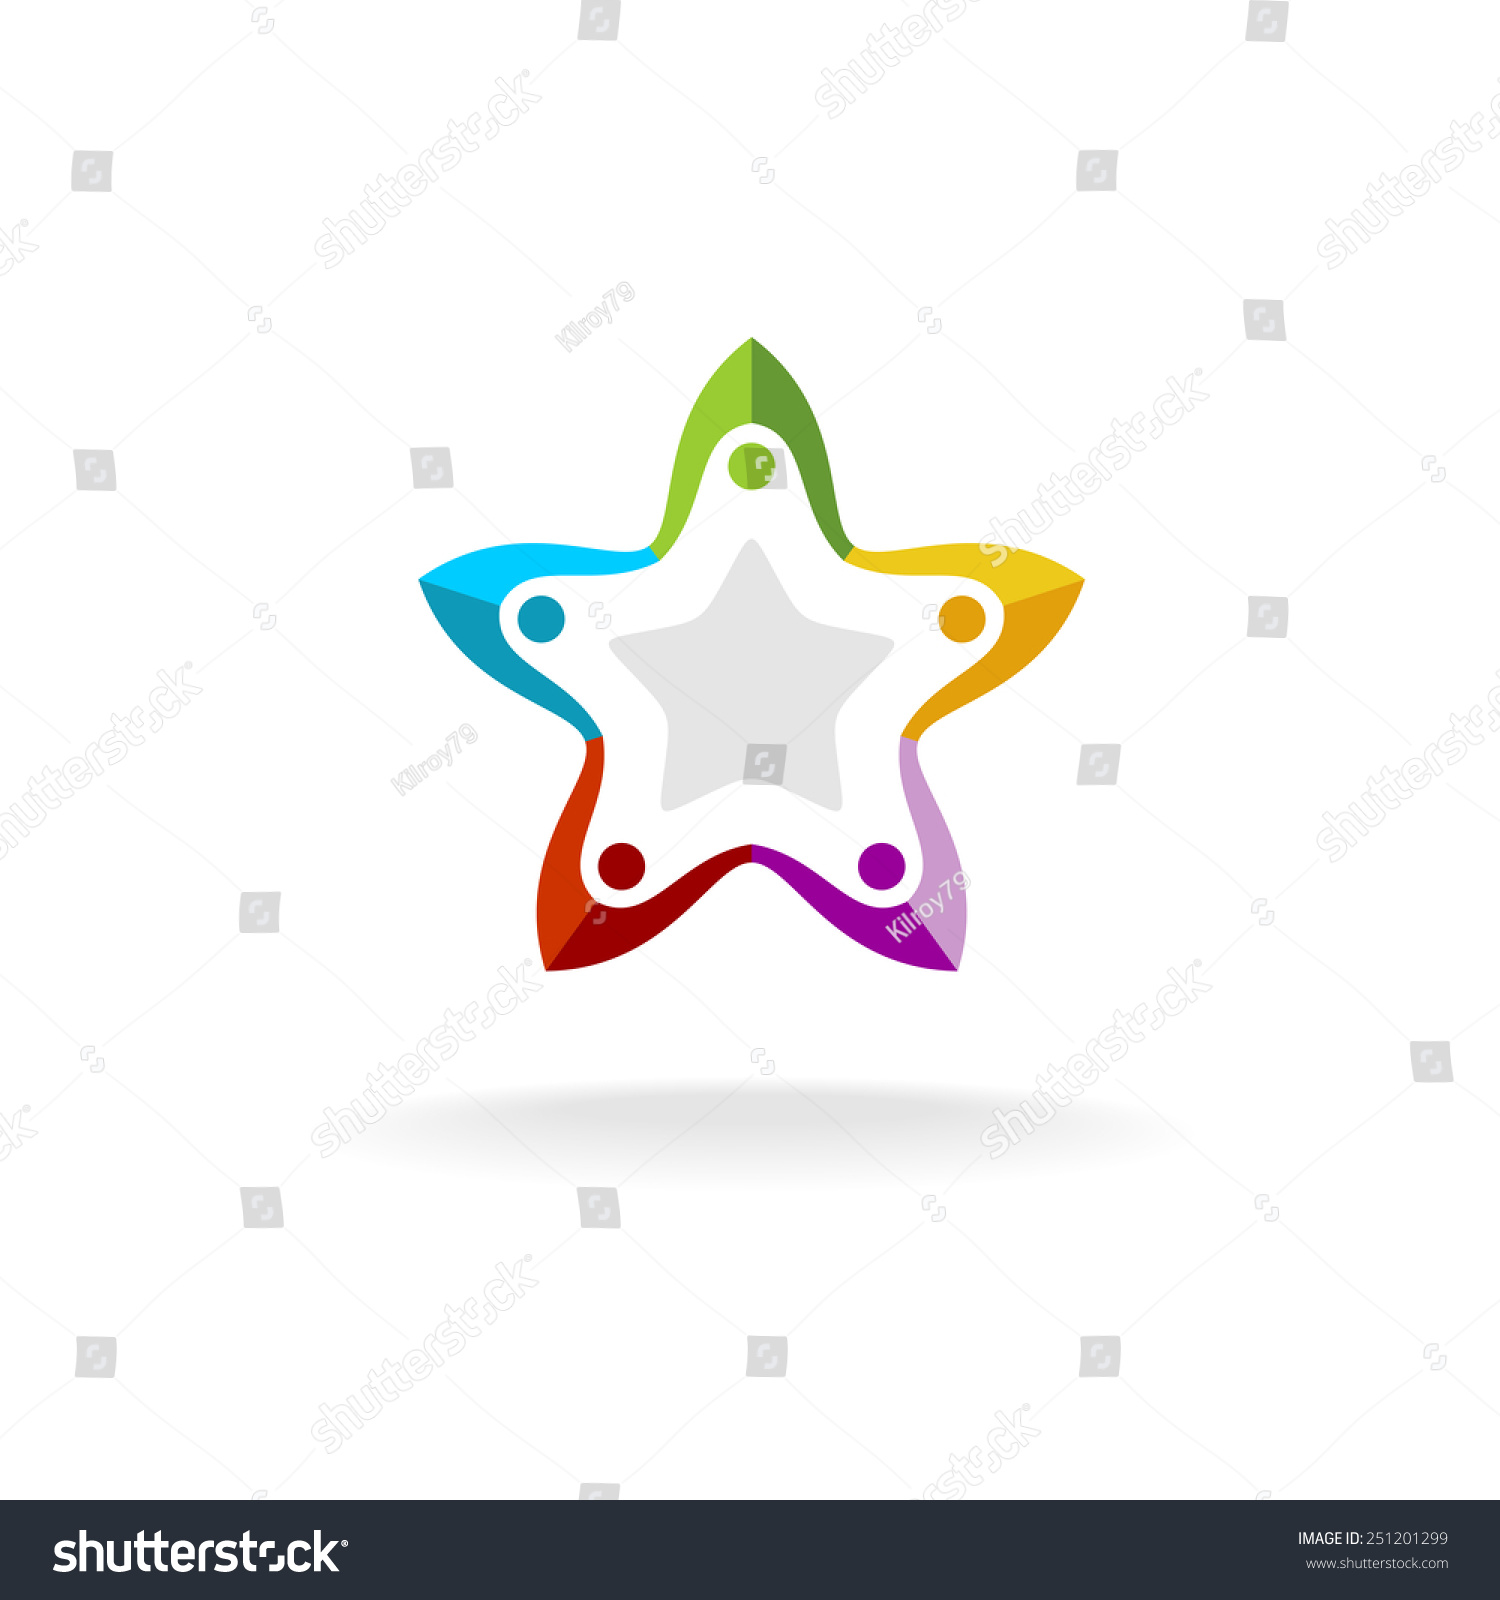 Five people round star shape logo stock vector 251201299 five people round in a star shape logo template colorful flat style pronofoot35fo Images